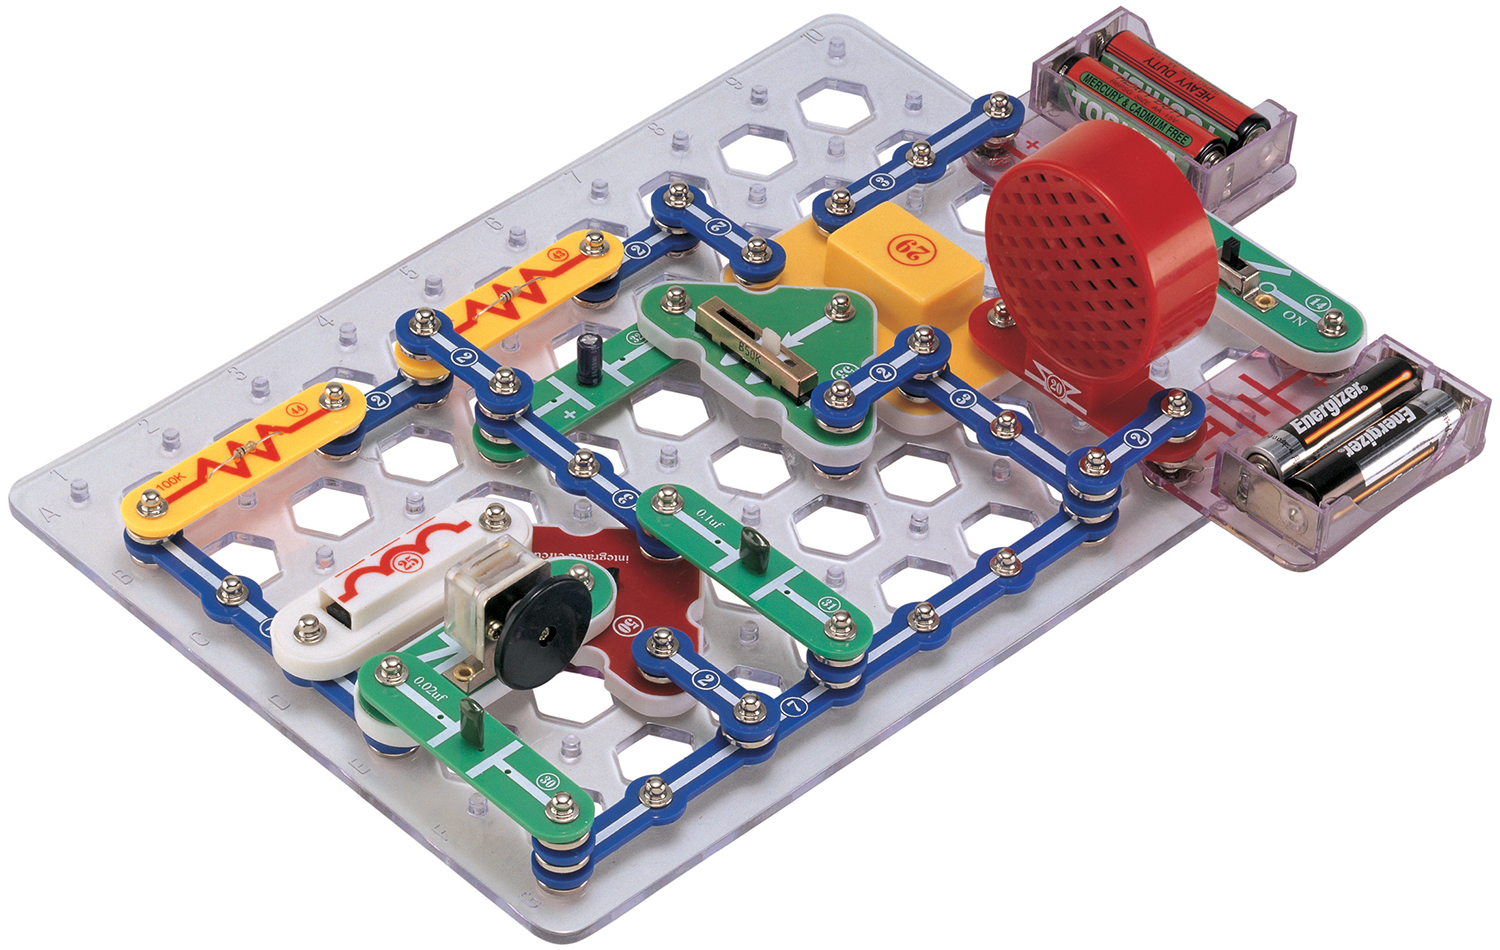 Electricity Sizzles with SNAP Circuits